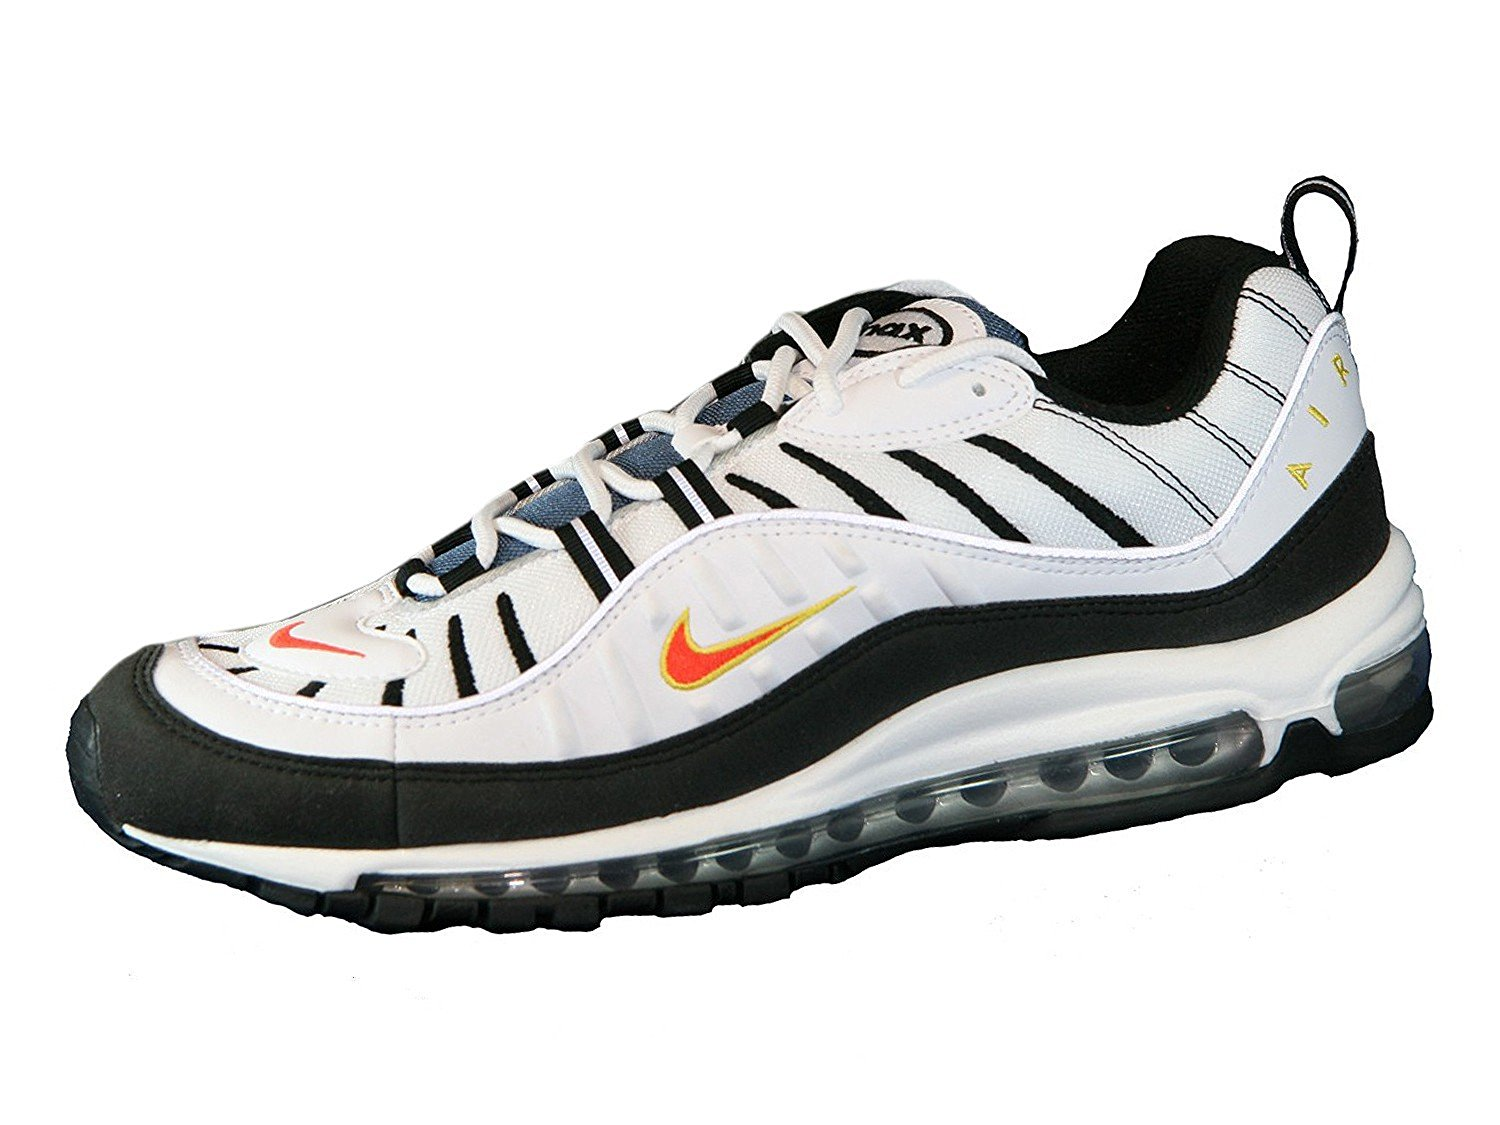 huge selection of 5917c 5f63d Very Goods | nike air max 98 mens trainers 640744 101 uk 9 ...